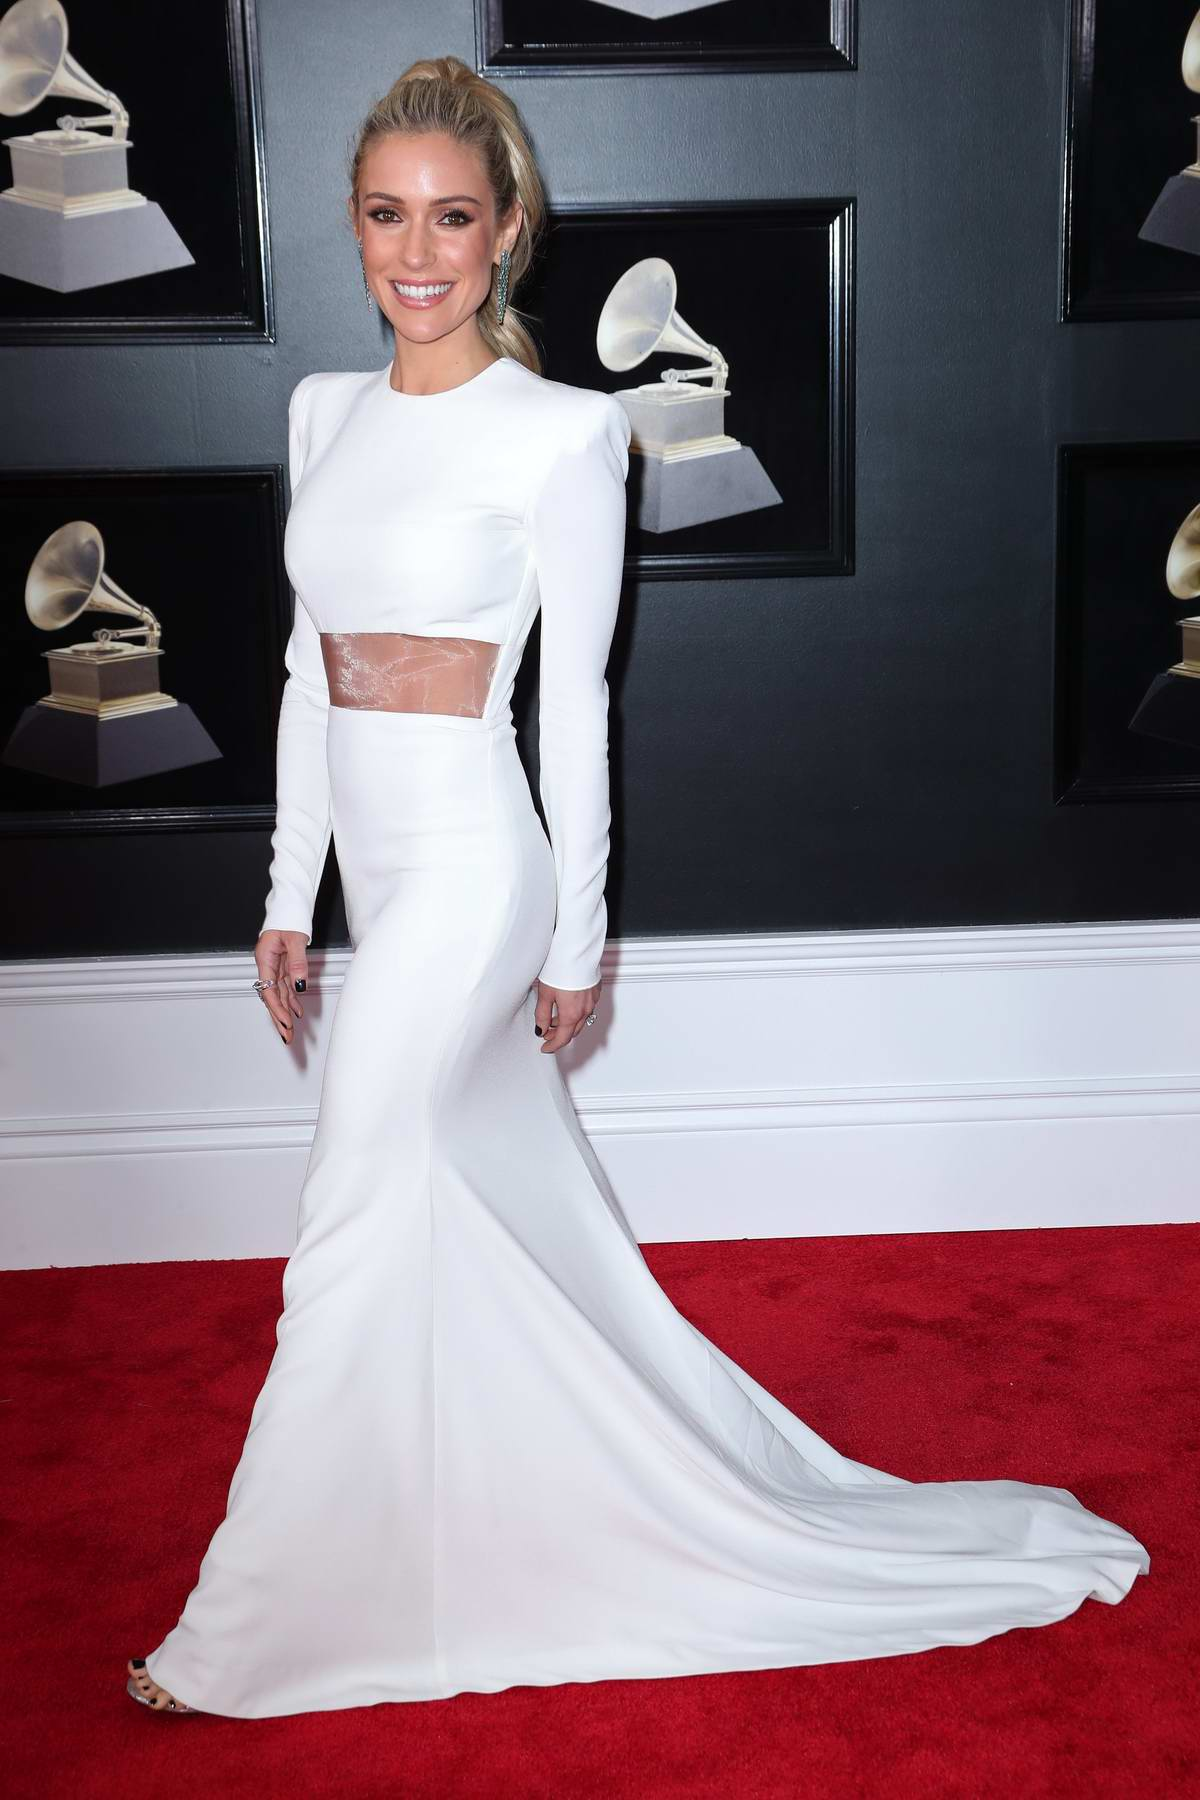 Kristin Cavallari attends the 60th Annual Grammy Awards at Madison Square Garden in New York